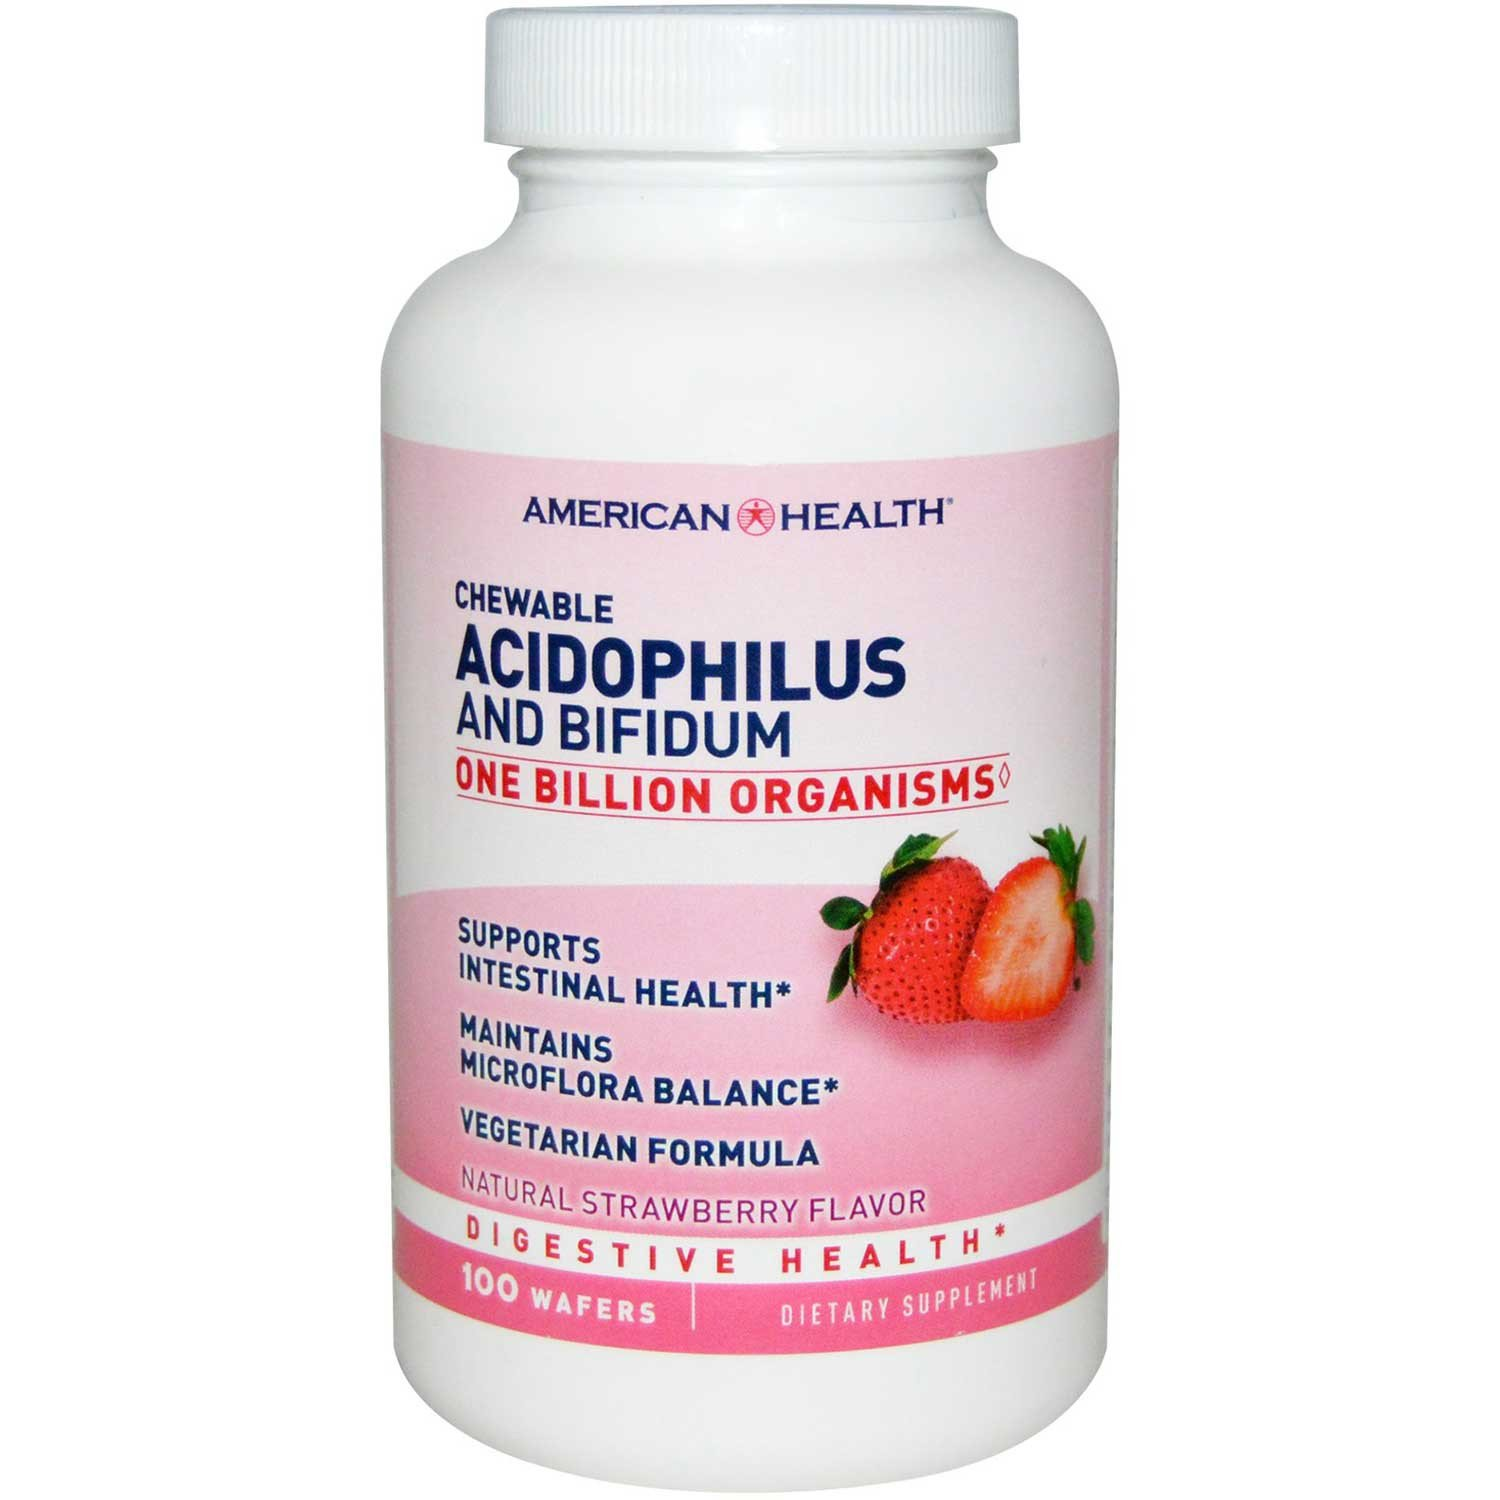 American Health Chewable Acidophilus w/Bifidus - Strawberry, 100 tabs